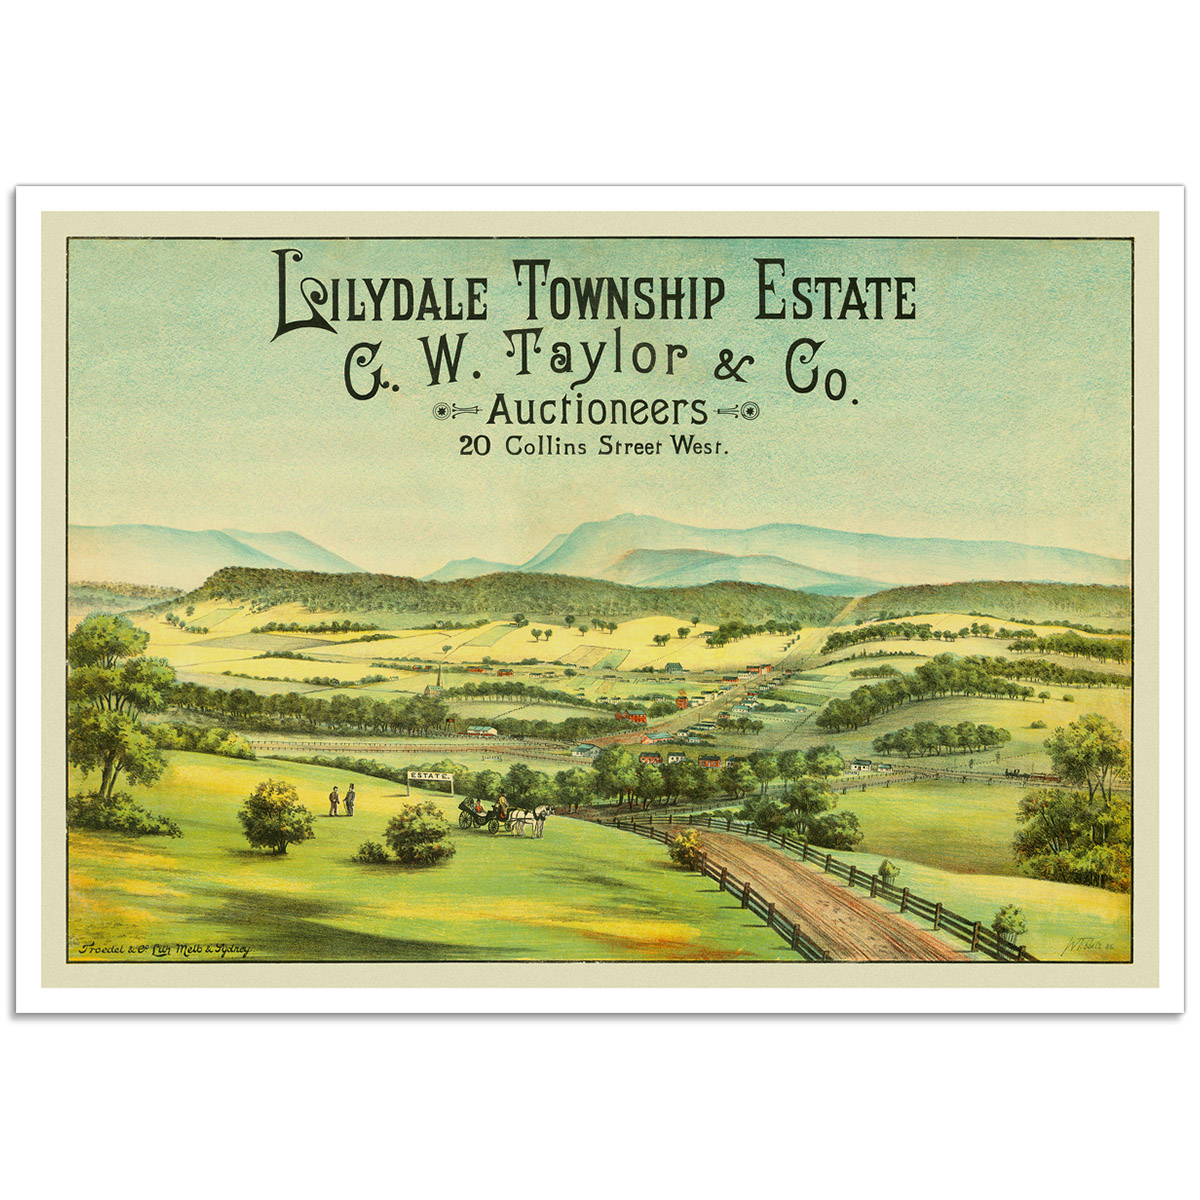 Lilydale Township Estate - Vintage Australian Advertising Poster